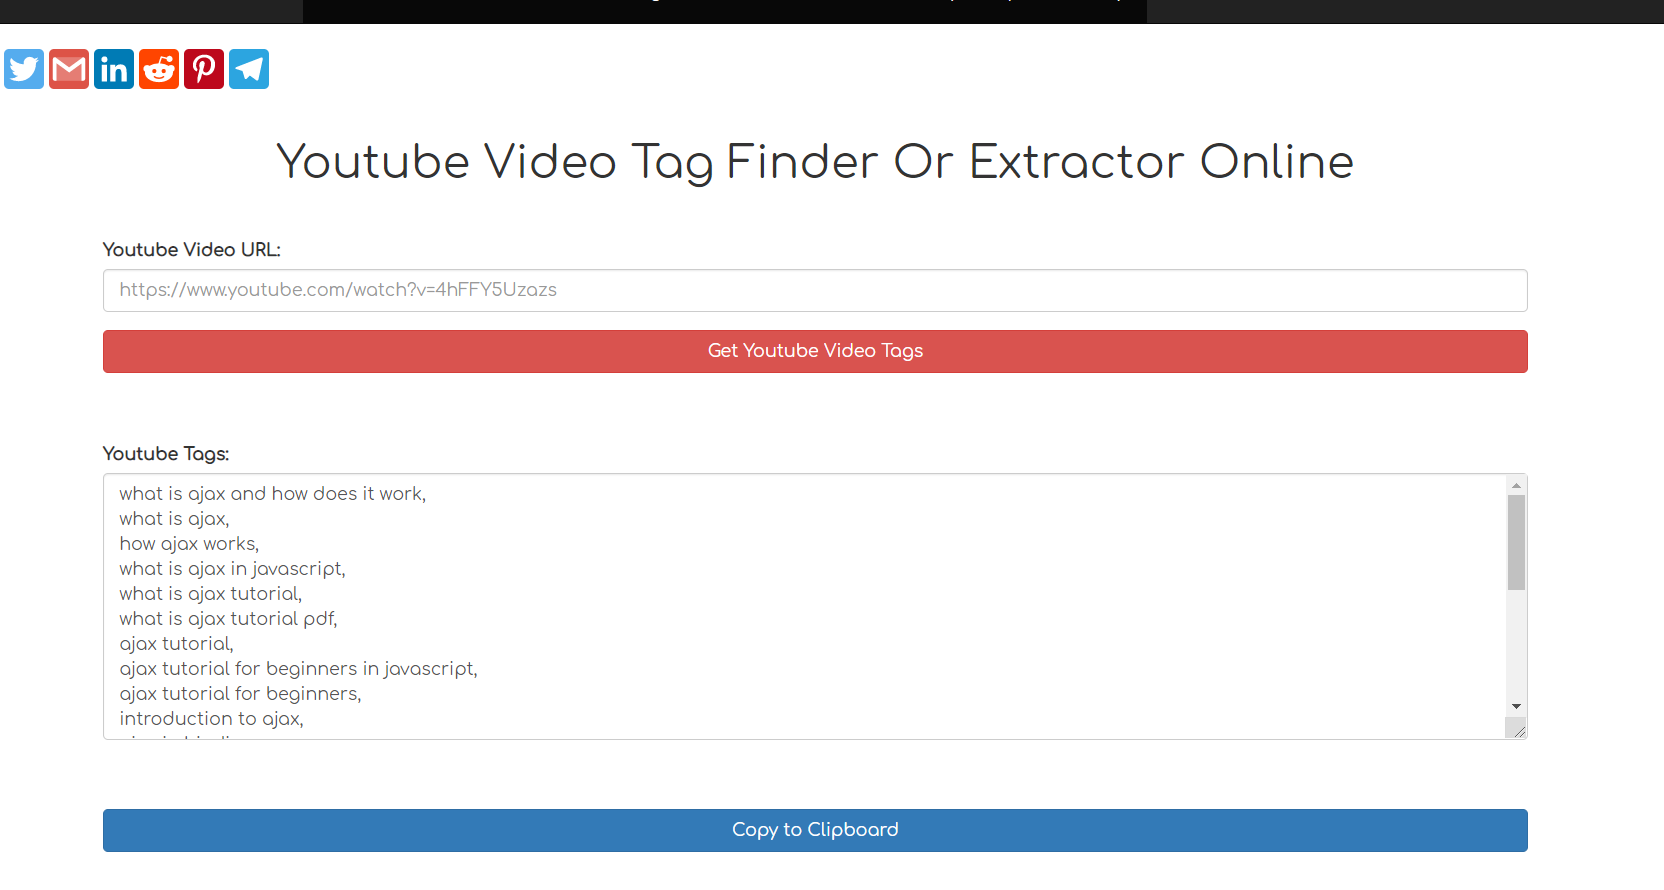 Node.js Express Python Script to Extract Youtube Video Tags Using BeautifulSoup4 Library Full Project 2020